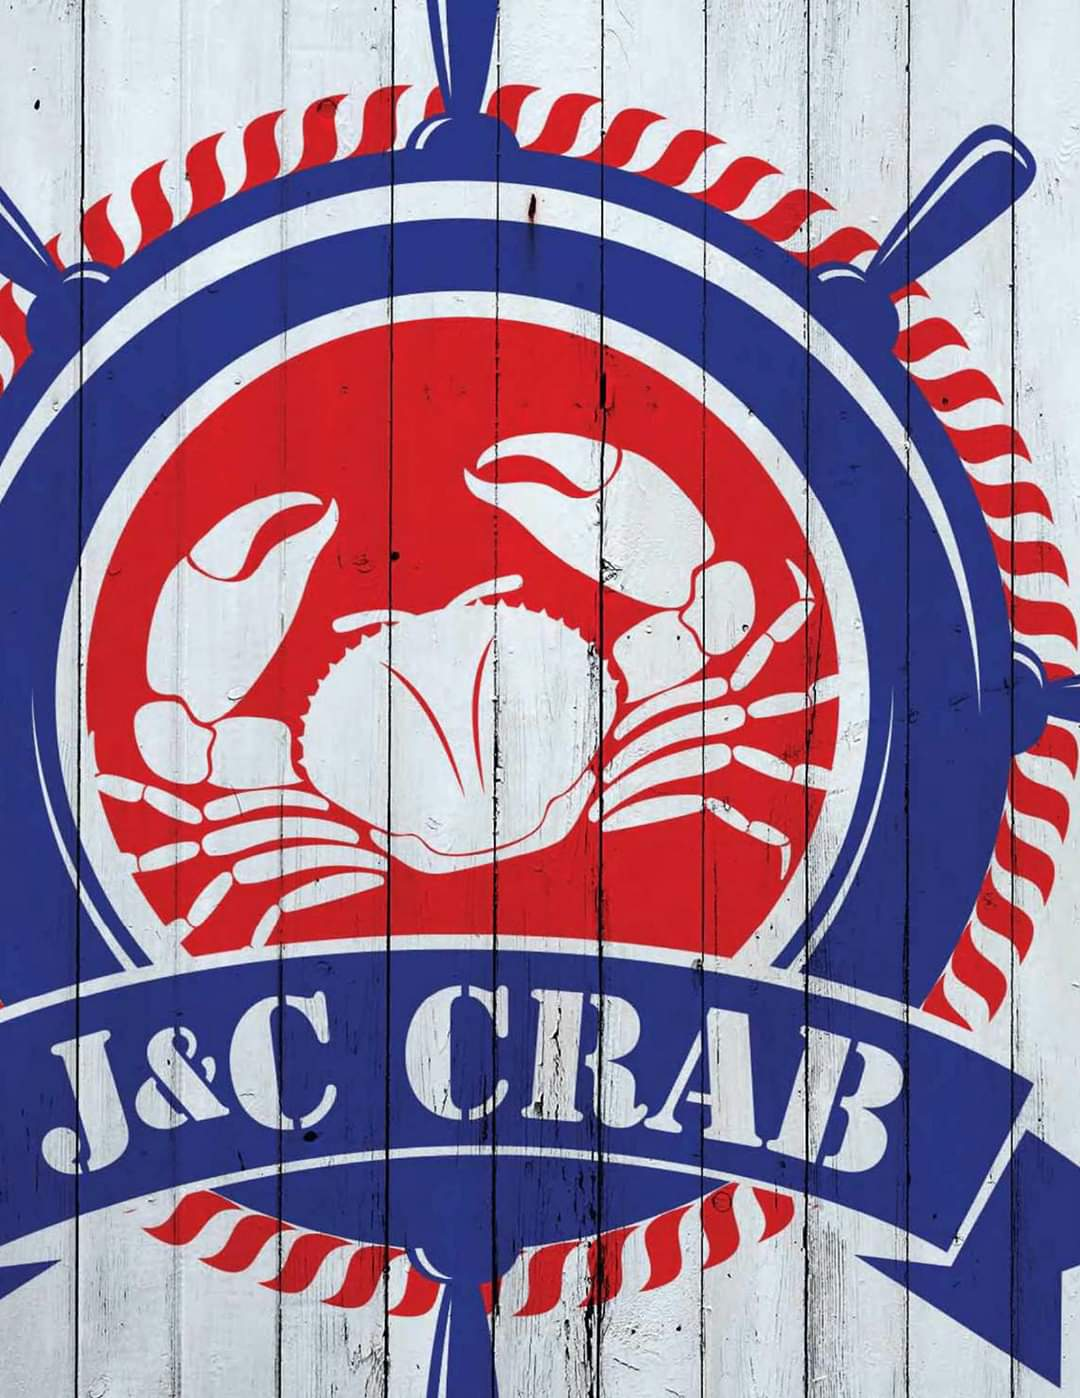 J&C Crab- Juicy Seafood